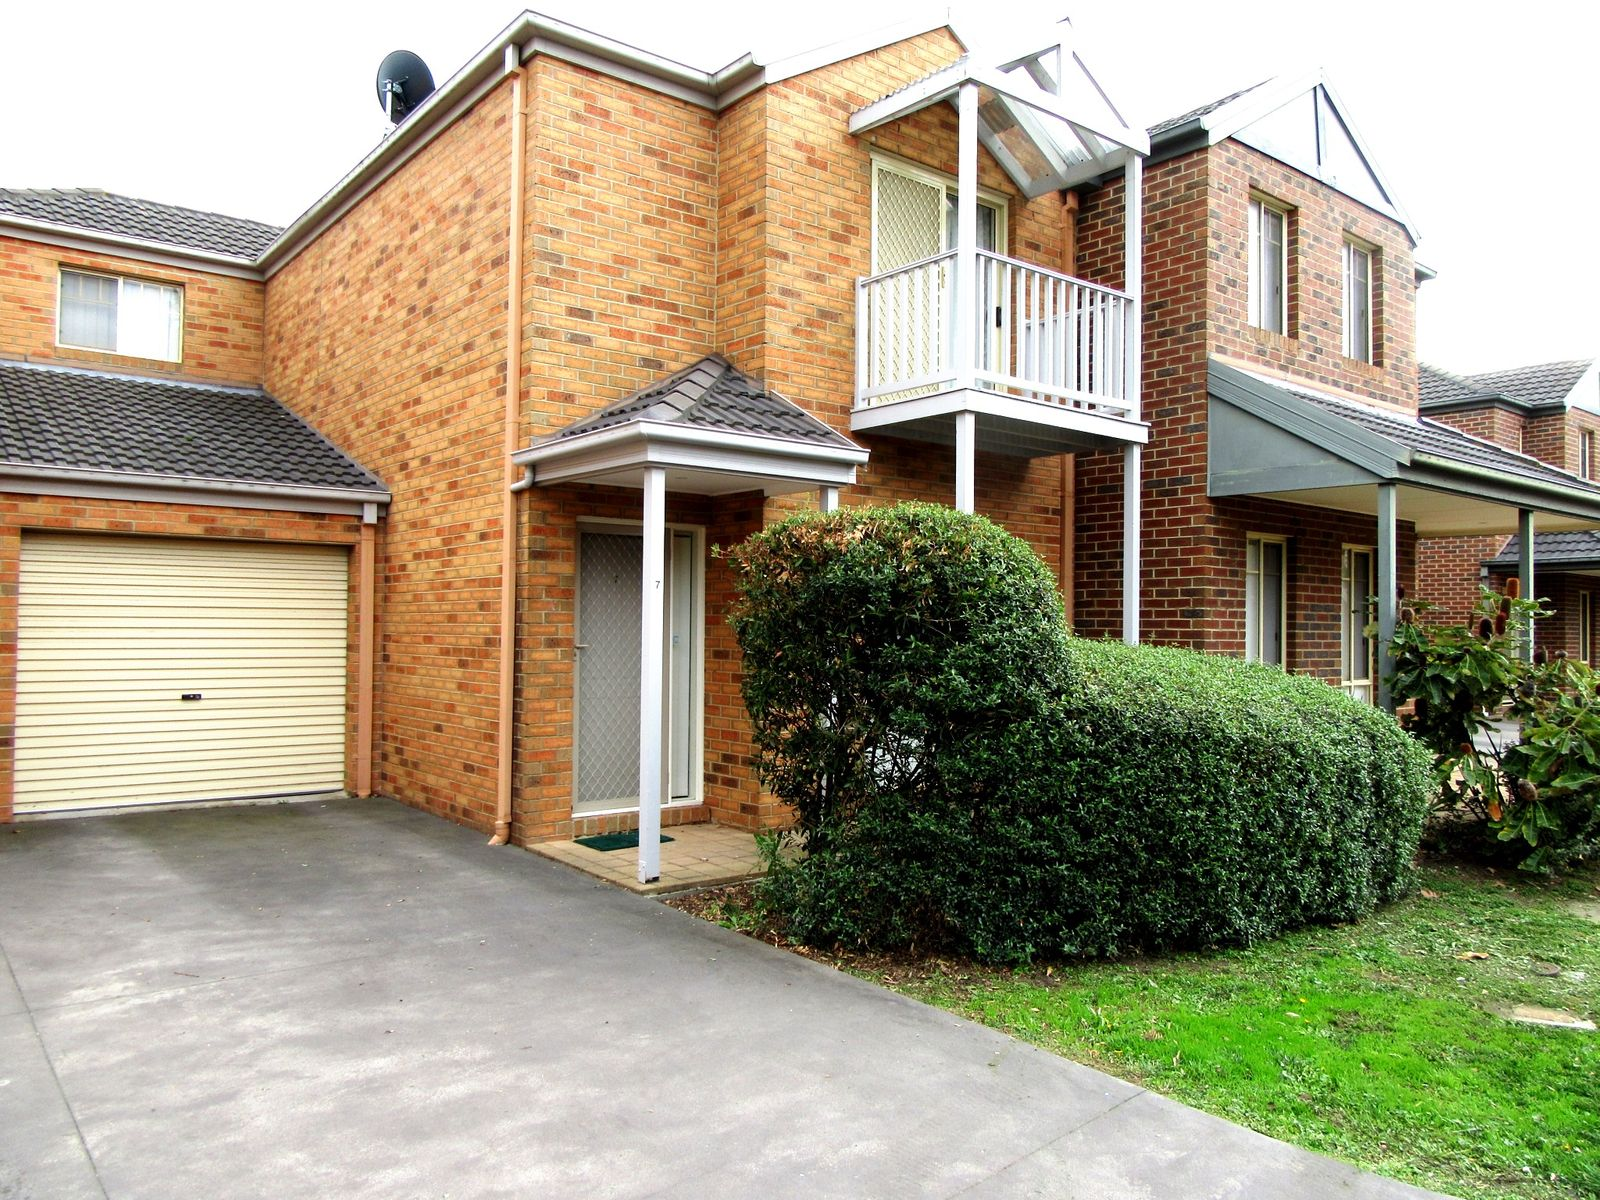 7/19 Sovereign Place, Wantirna South, VIC 3152